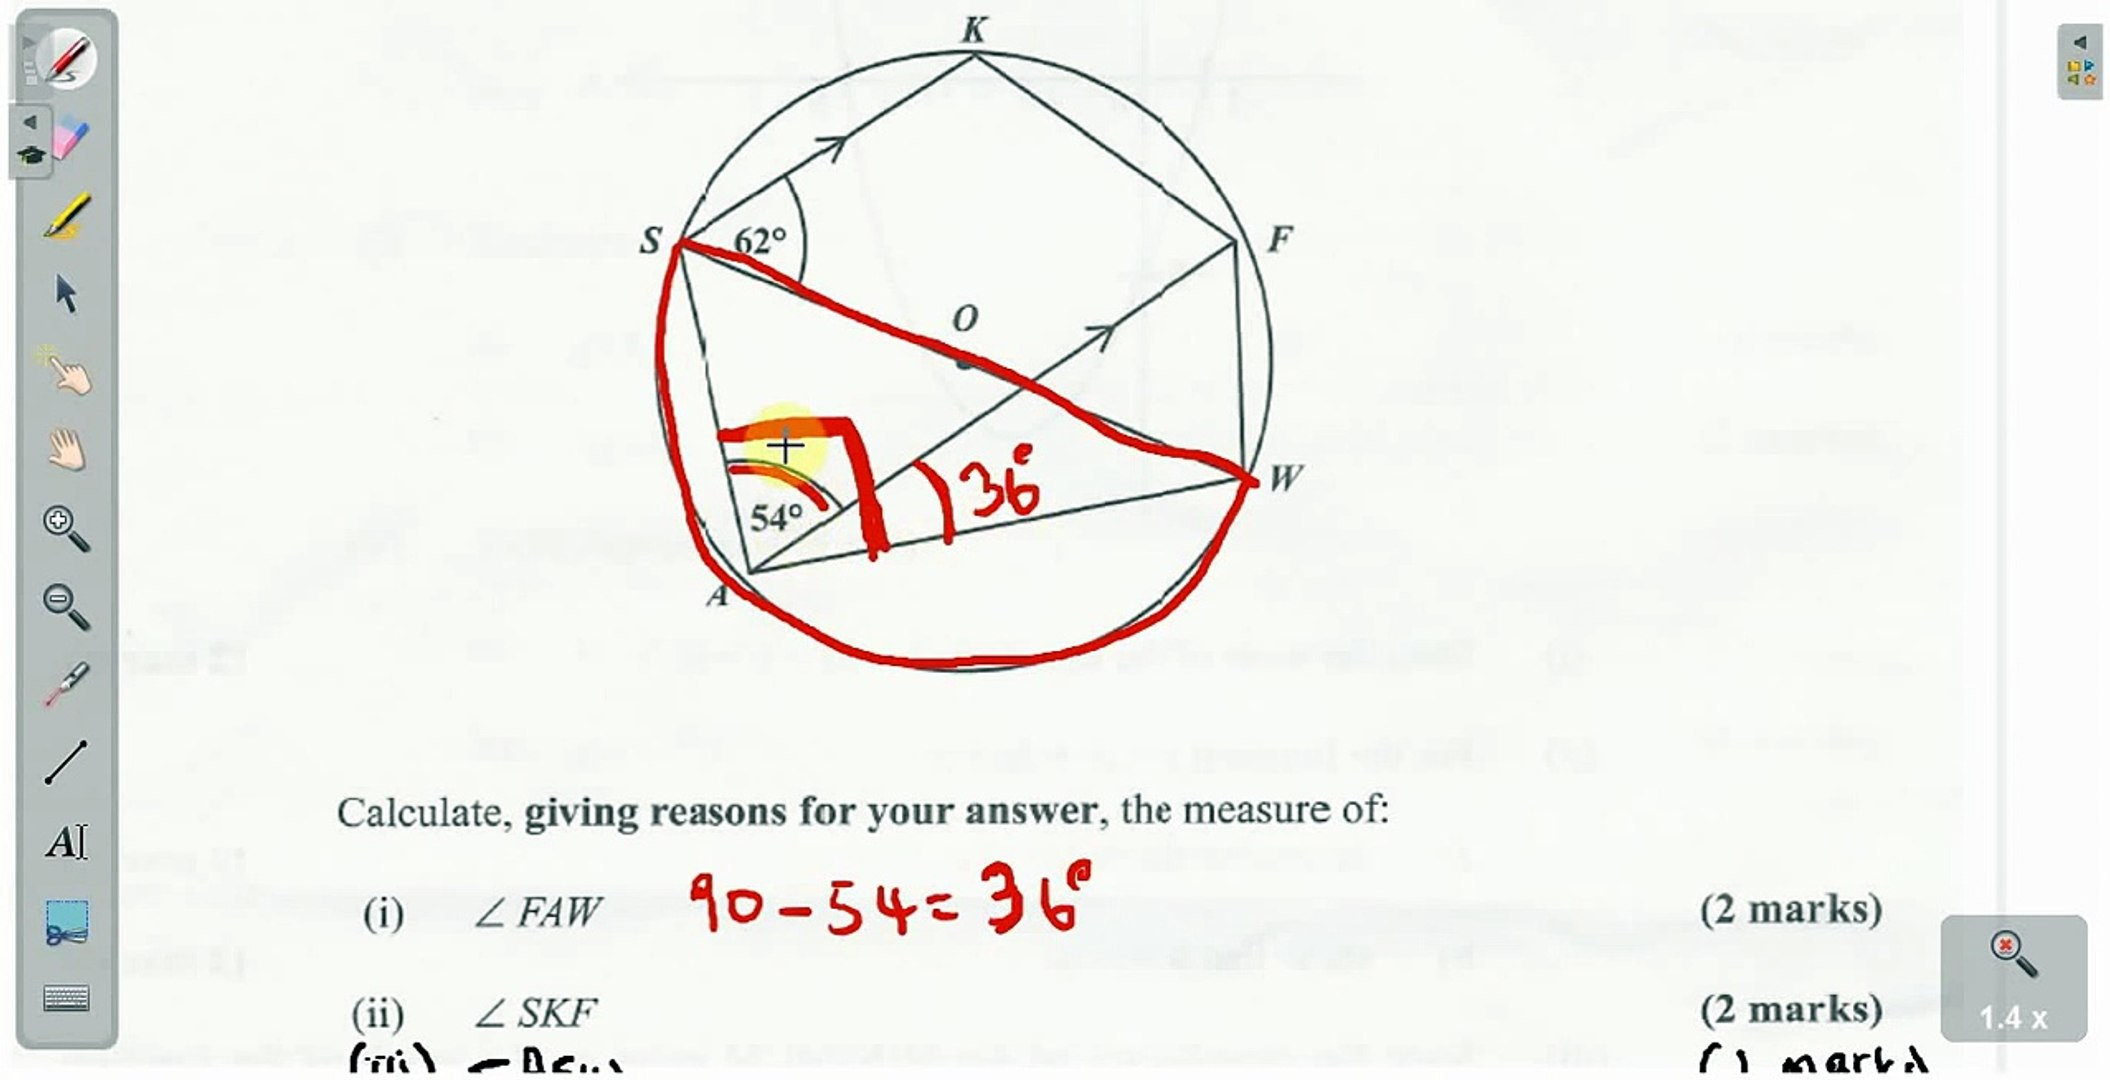 CSEC CXC Maths Past Paper 2 Question 10a January 2014 Exam Solutions  ACT  Math, SAT Math,